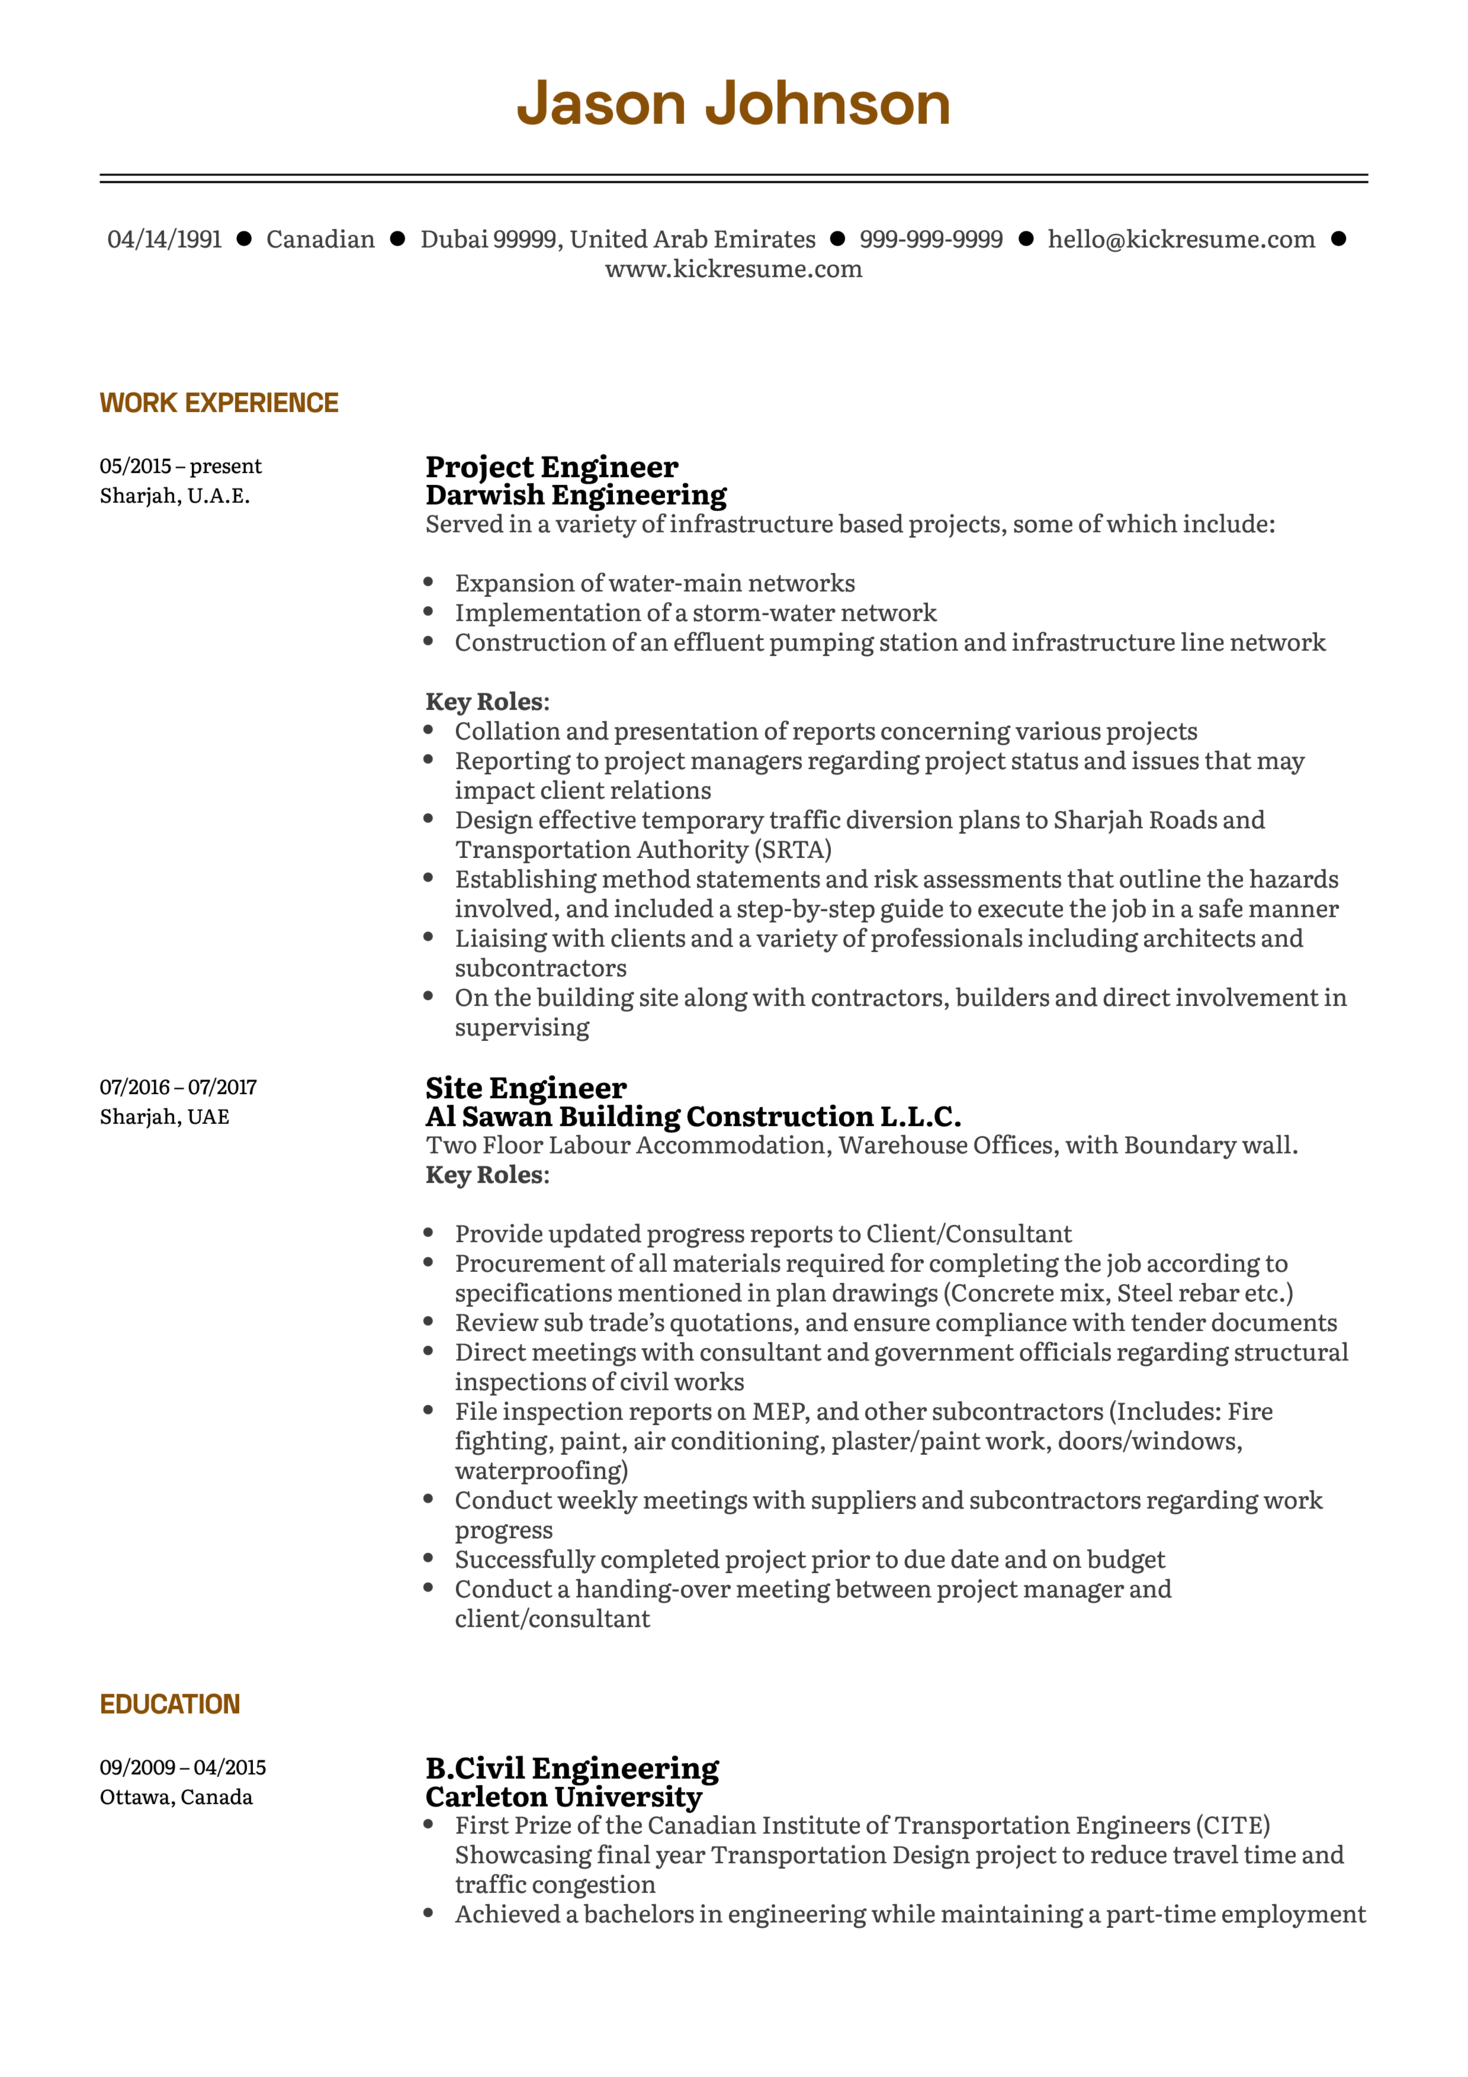 Project Engineer Resume Sample Kickresume